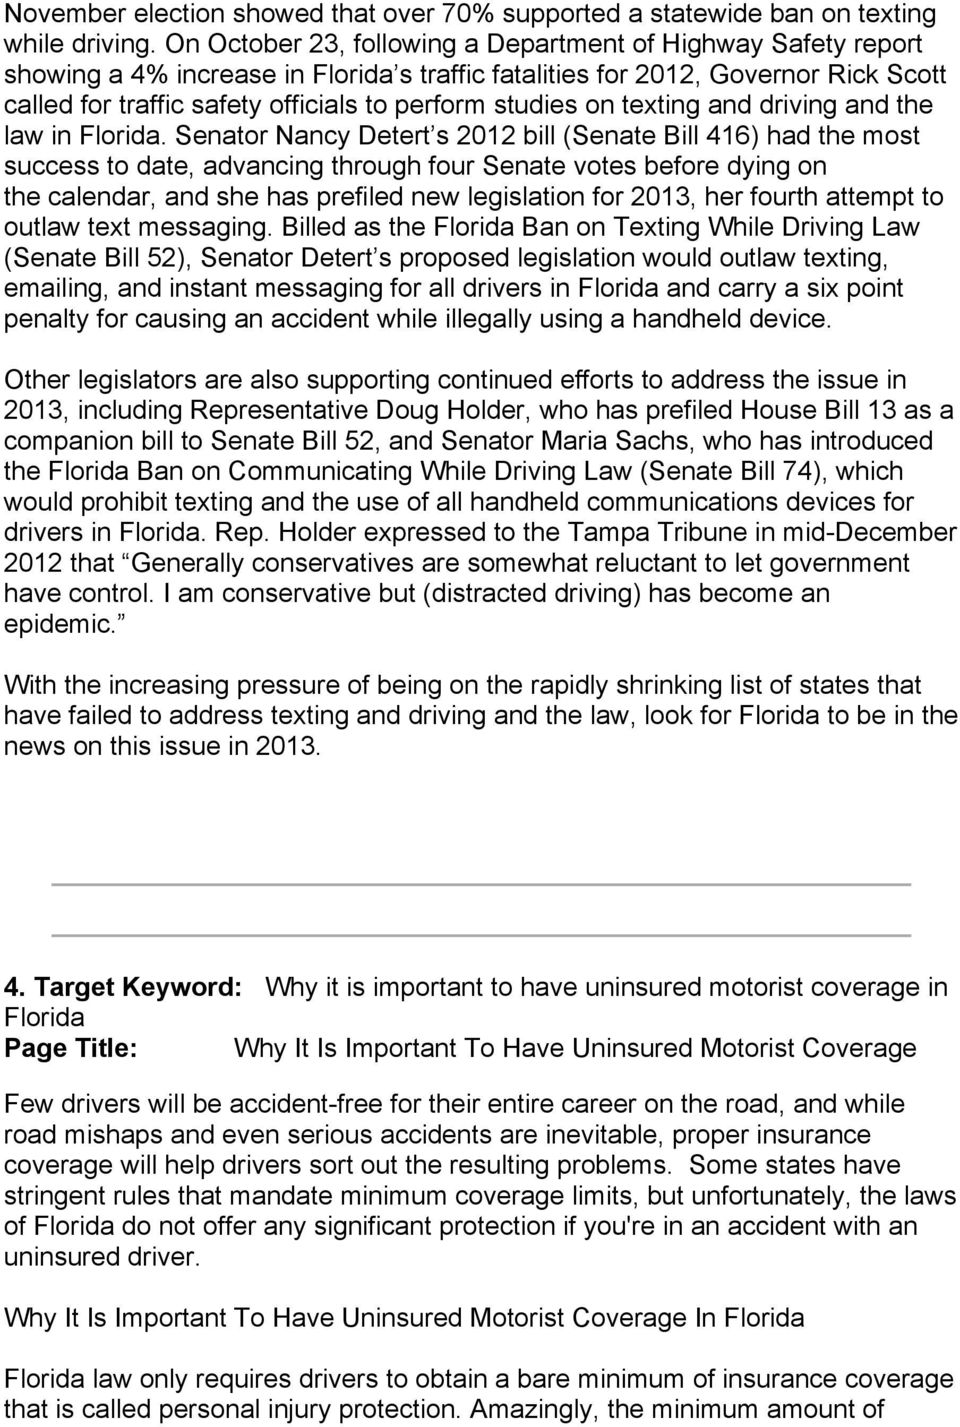 studies on texting and driving and the law in Florida.